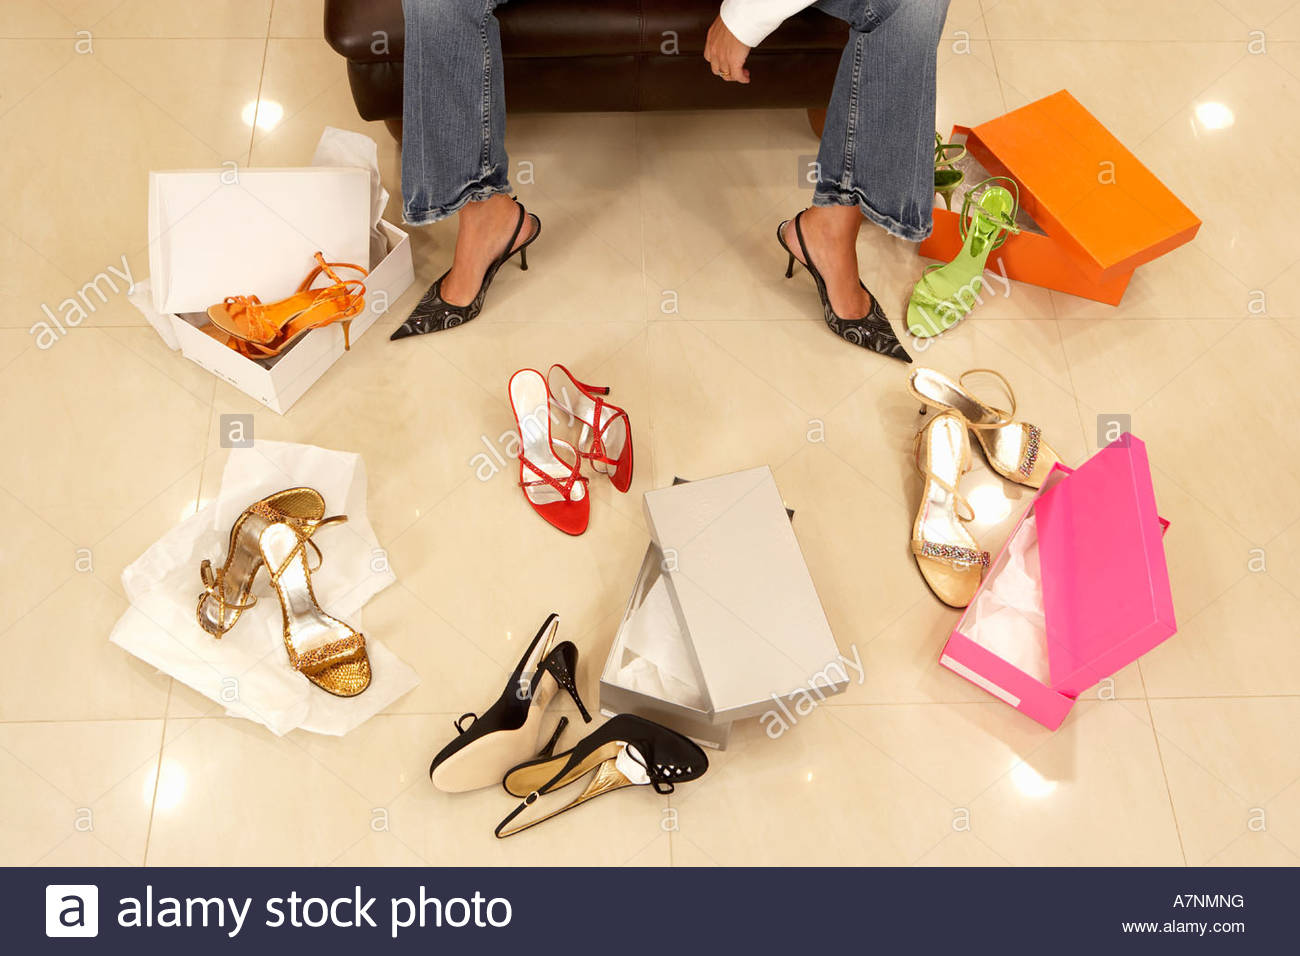 Woman trying on different pairs of high heels in shoe shop low section elevated view - Stock Image